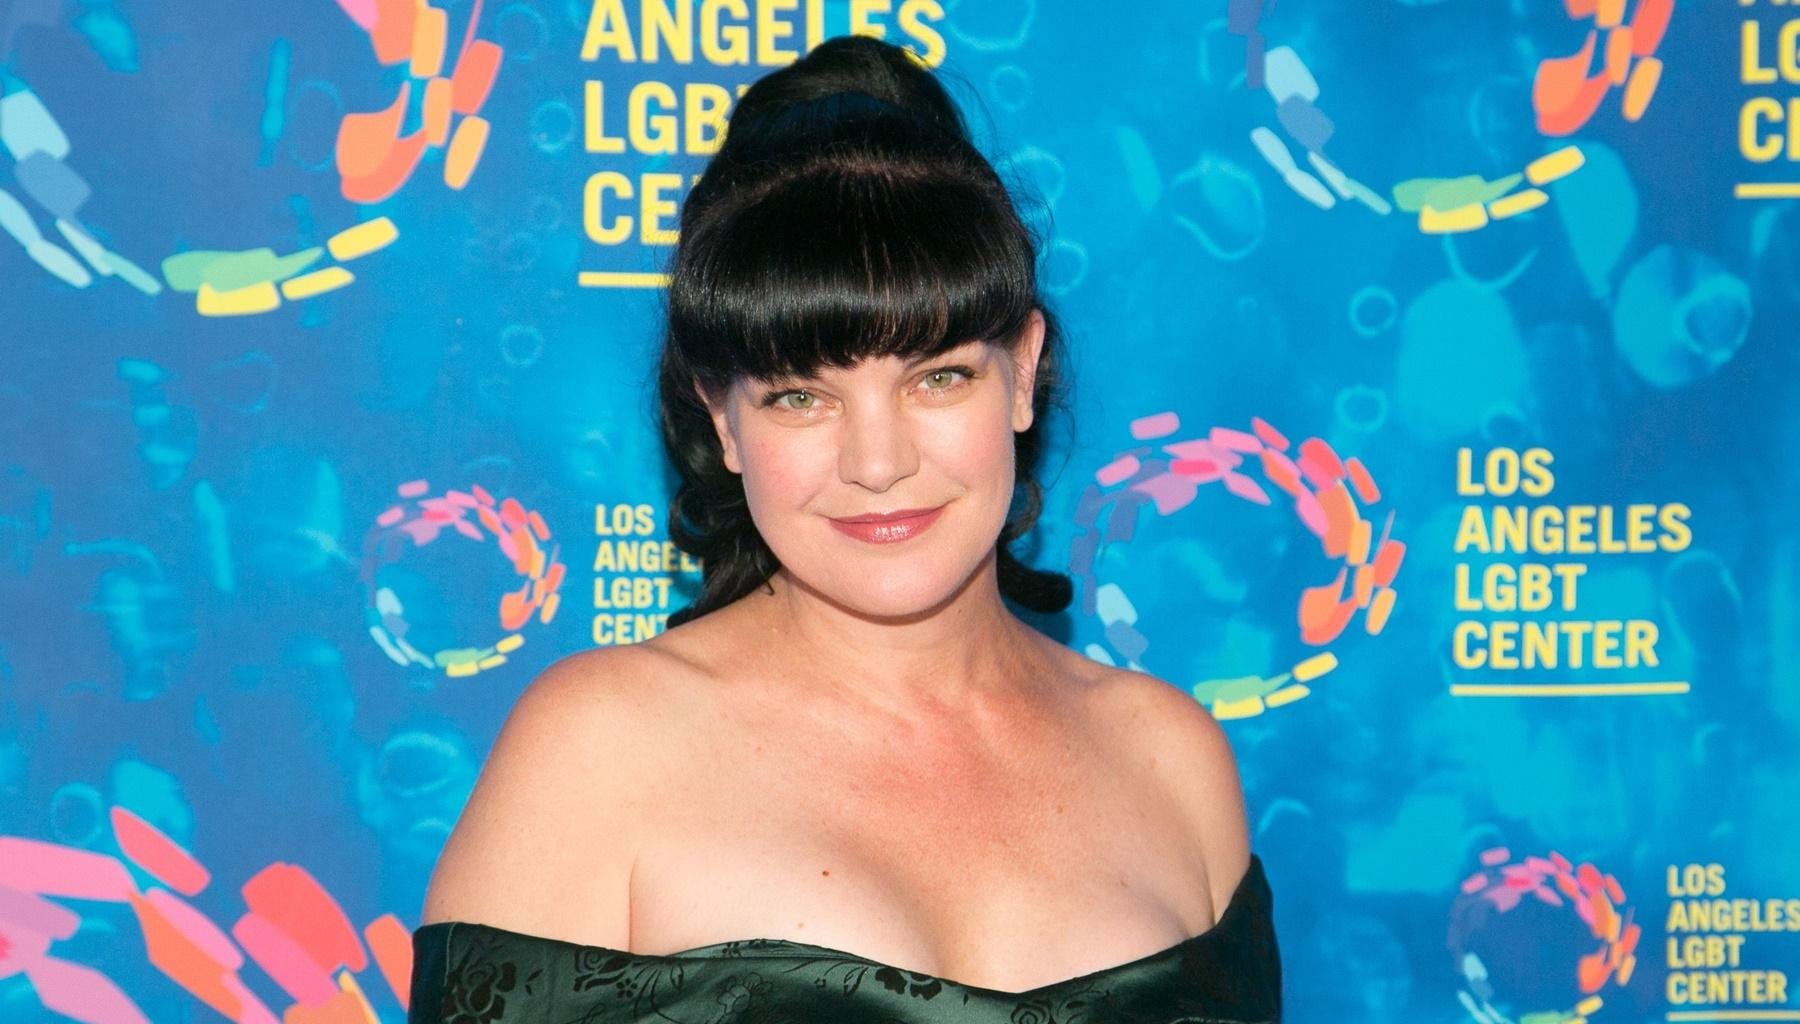 Former 'NCIS' Star Pauley Perrette Lands New Show 'Broke' As Mark Harmon's Series Gets Renewed -- Excited Fans Cannot Wait For Her Next Steps With Co-Star Jaime Camil